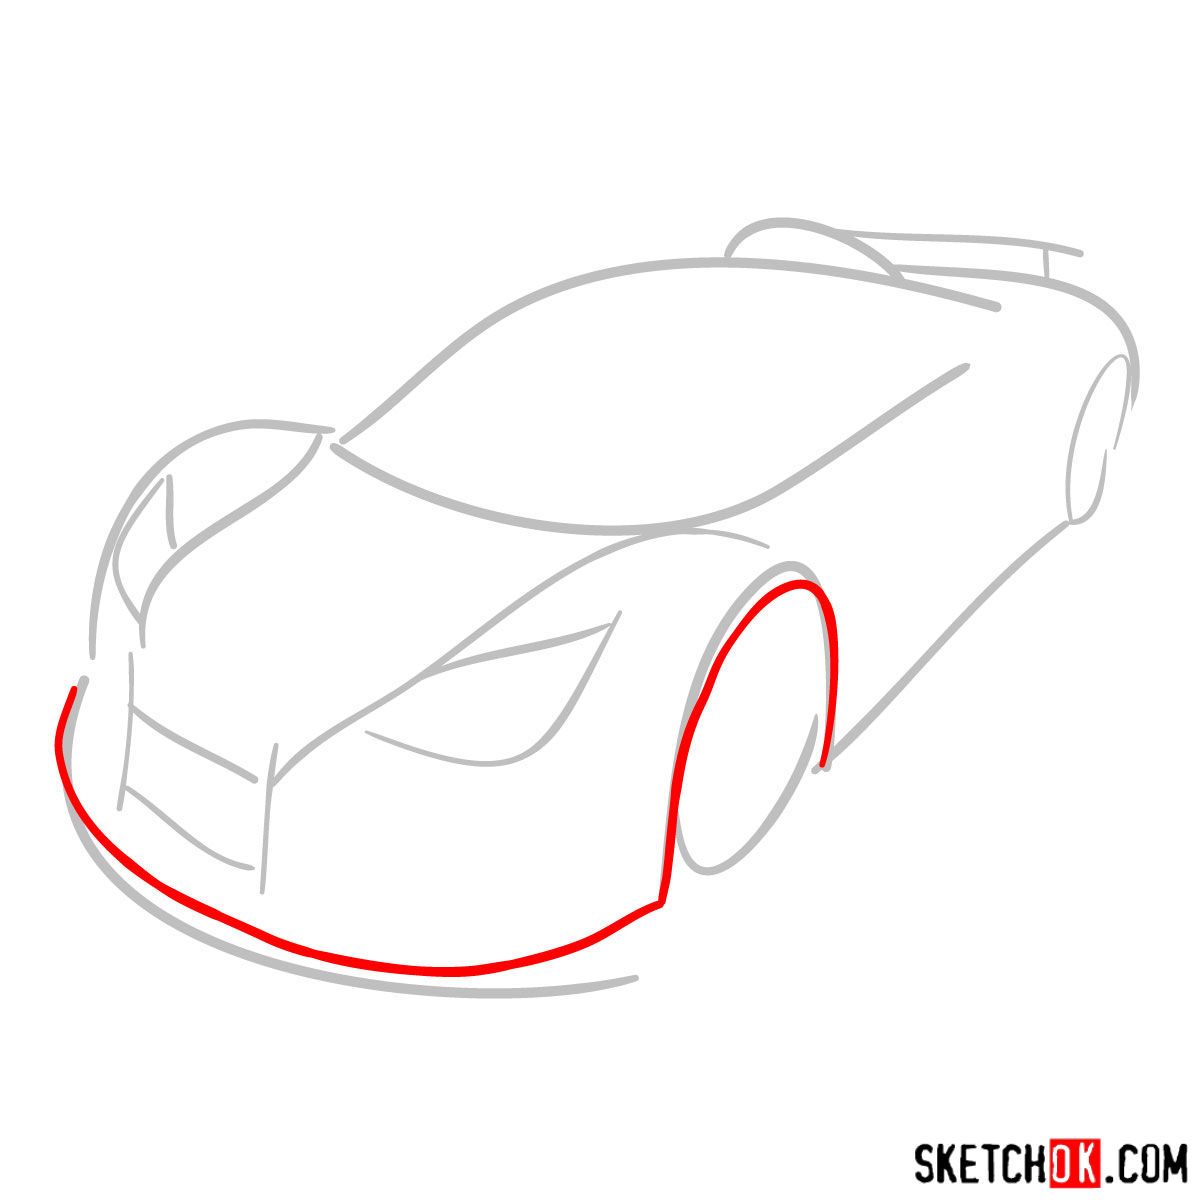 How to draw Gumpert Apolo Sport 2012 - step 02